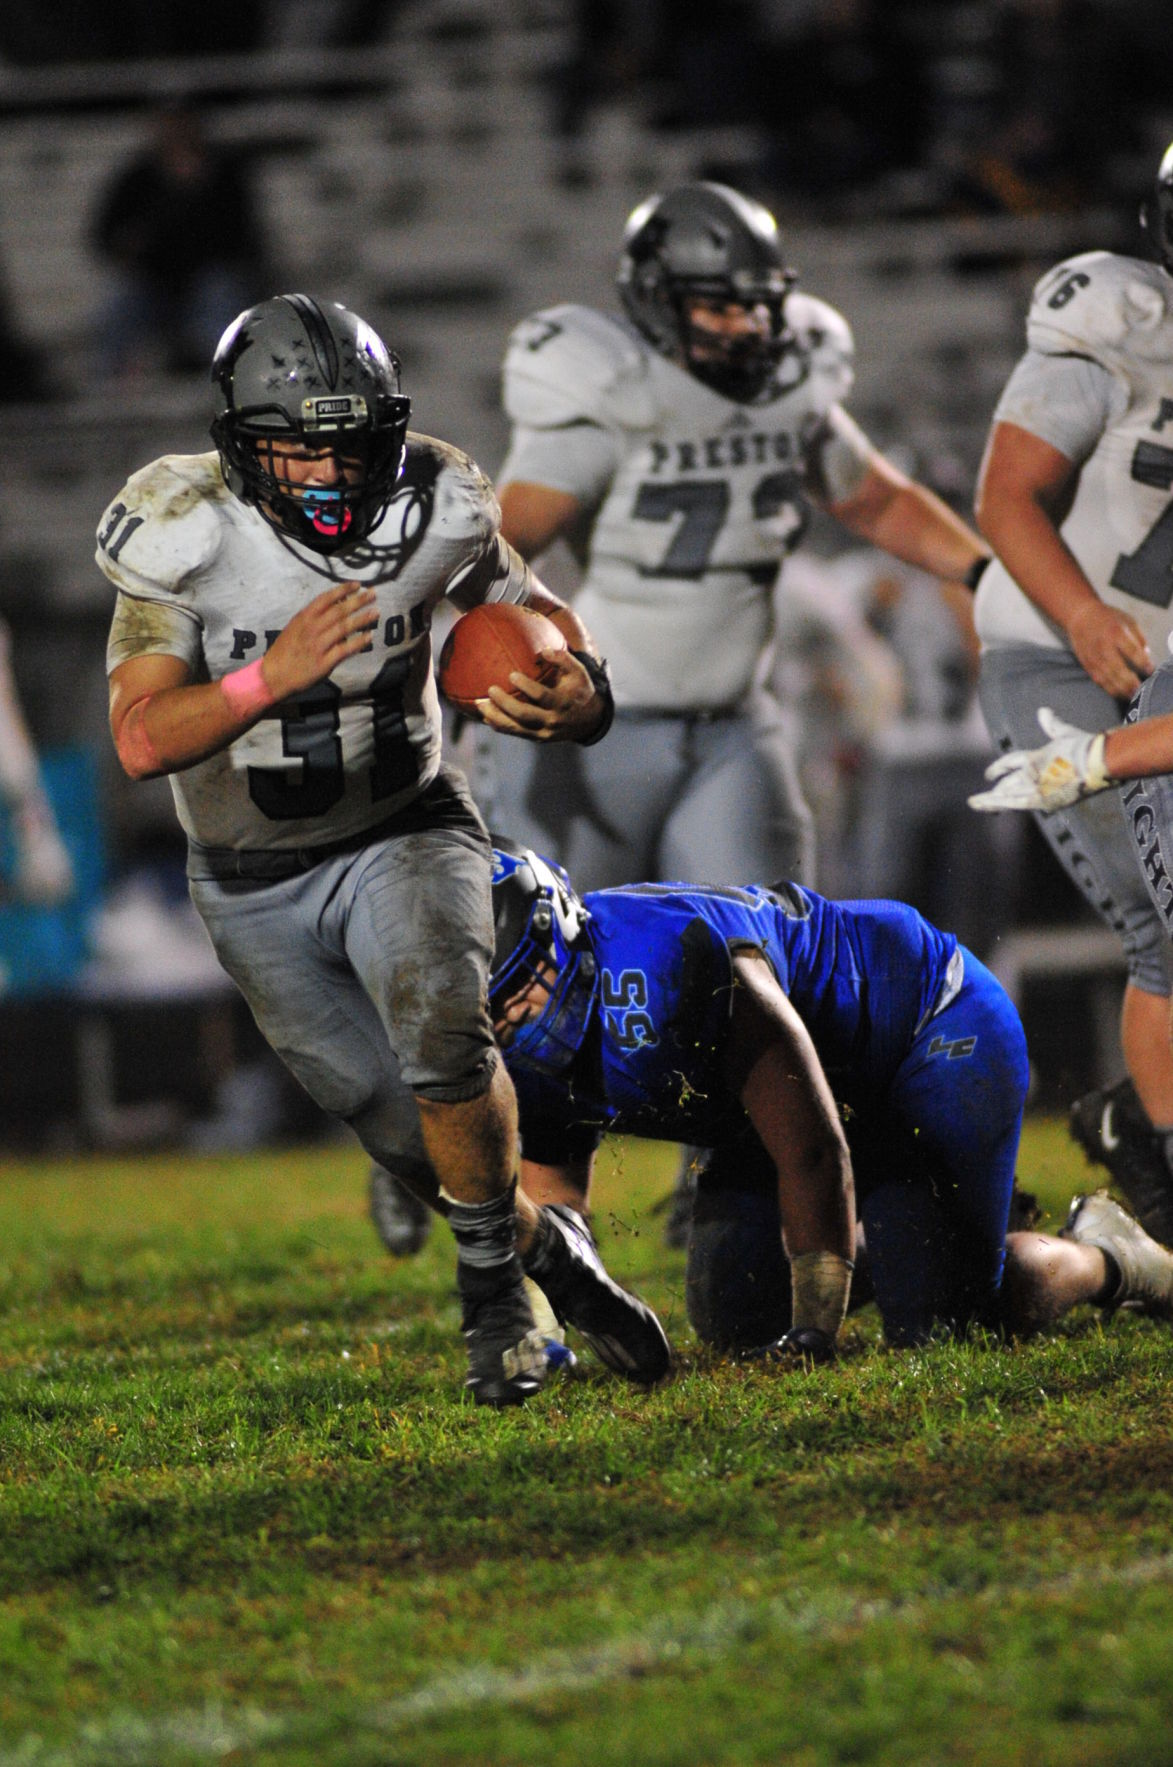 PC 31 breaks another tackle for a Knight first down.JPG